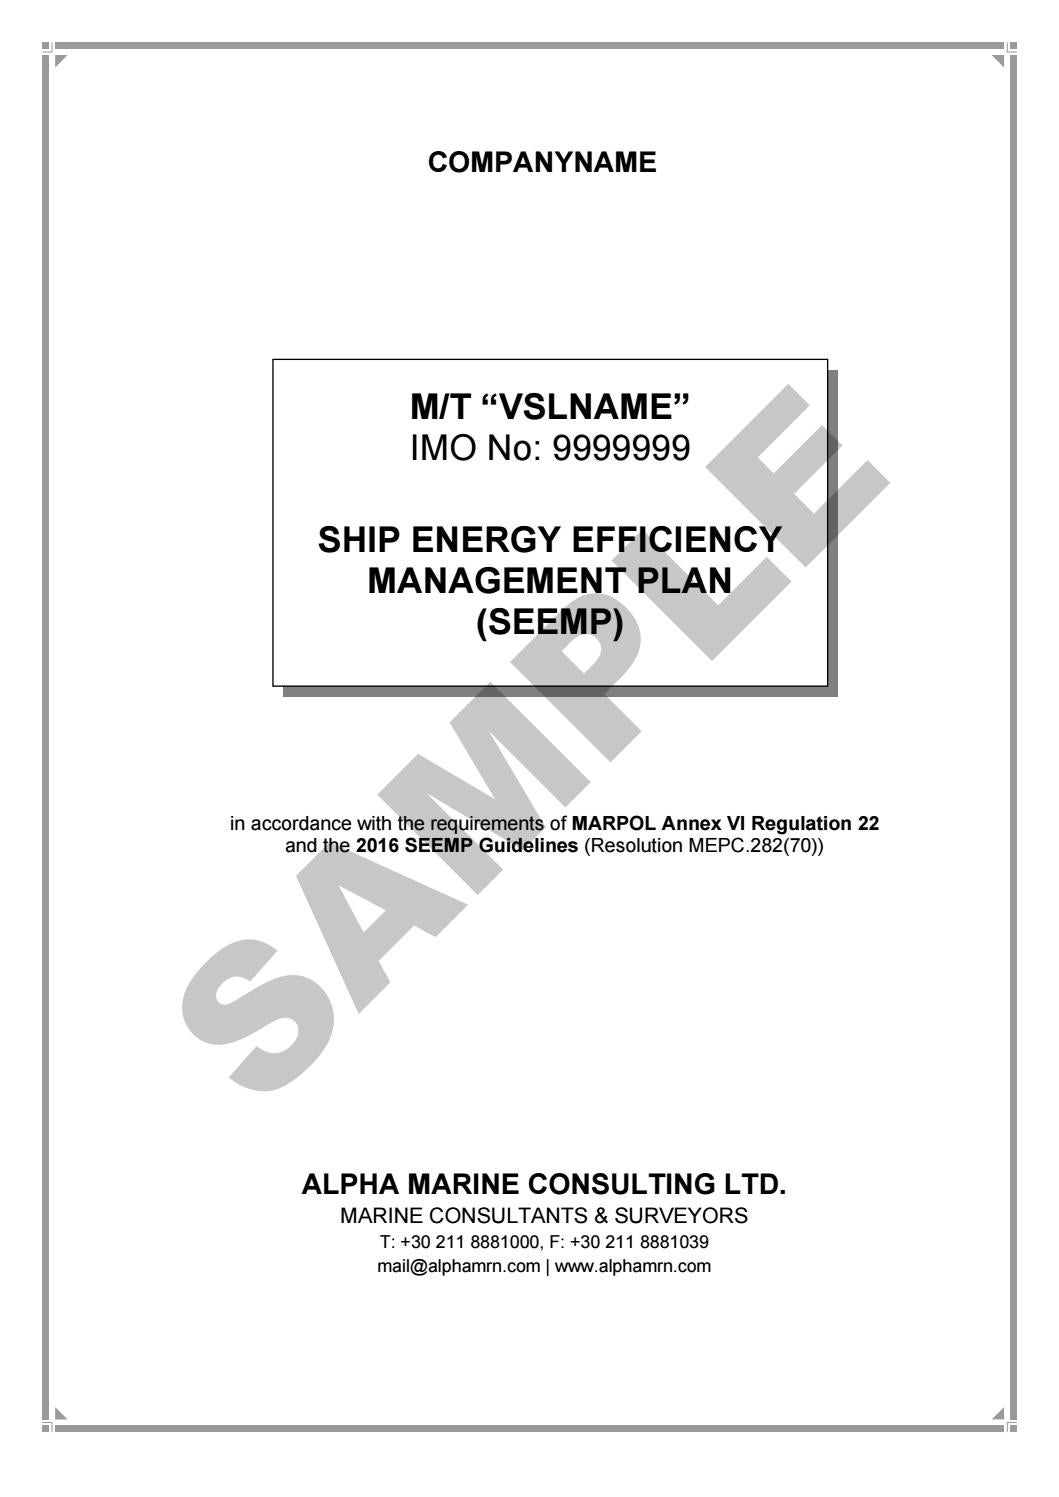 ship energy efficiency management plans  seemp  by alpha